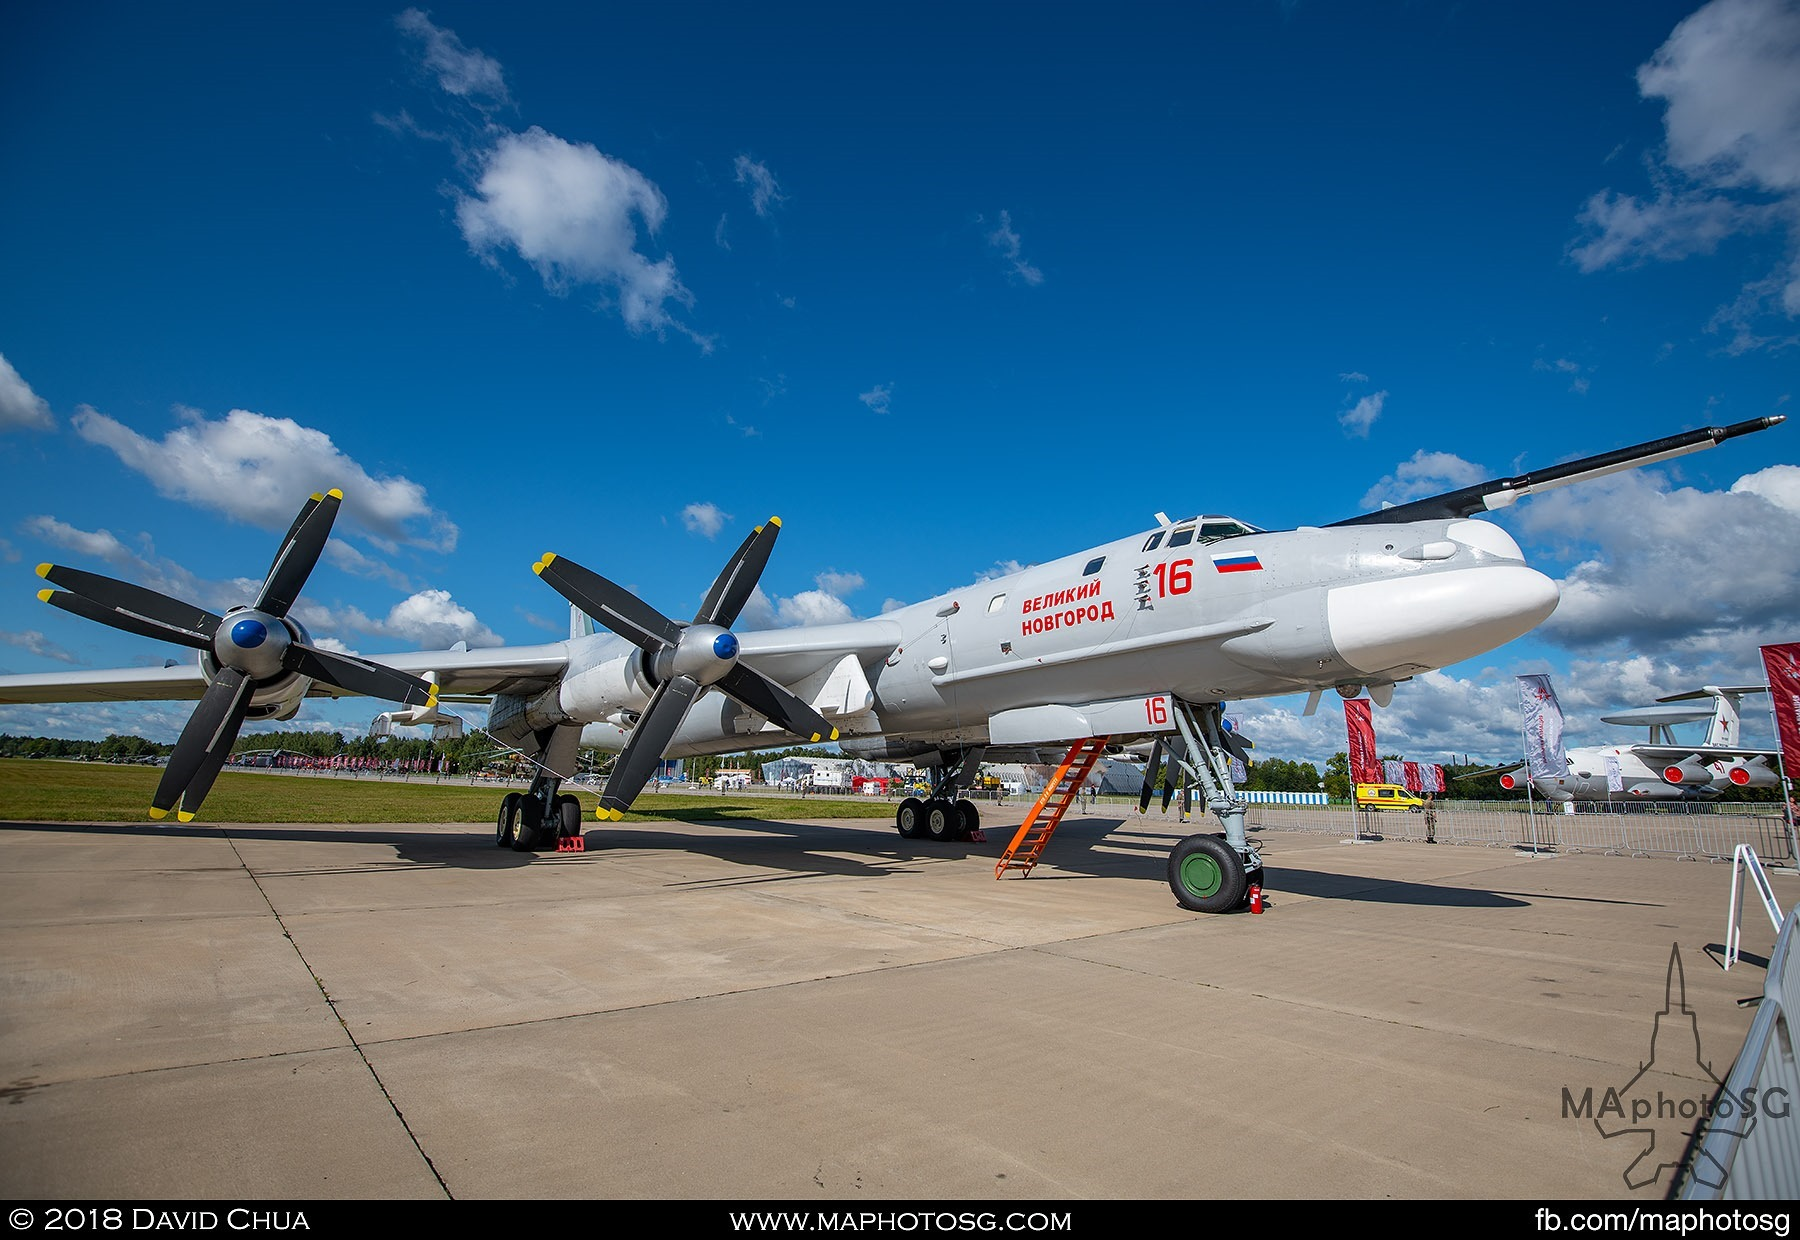 "21. Tupolev Tu-95mc strategic bomber is the latest version of the ""Bear"" that has been in service with the Russian Air Force since 1957"